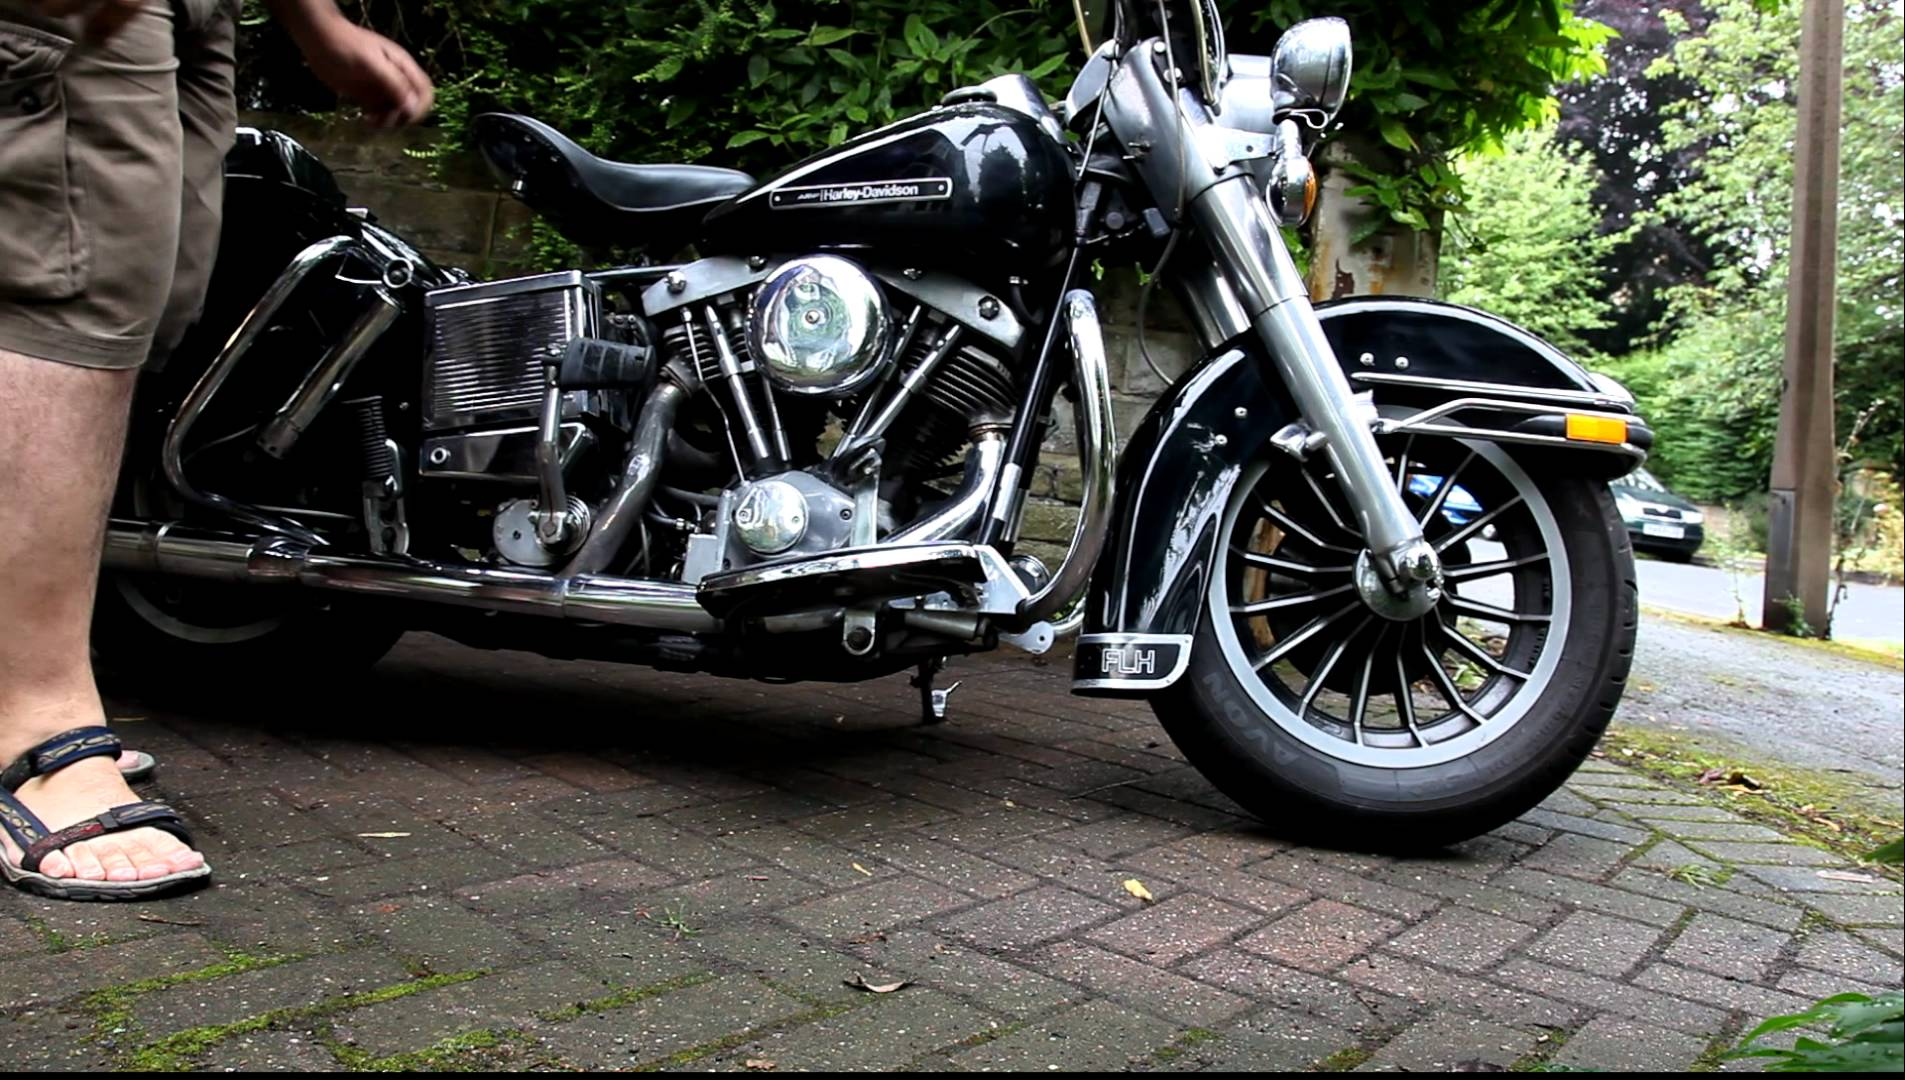 Collection 81 Harley Davidson Wiring Diagram Pictures - Wiring ... on dyna flh, shovelhead flh,